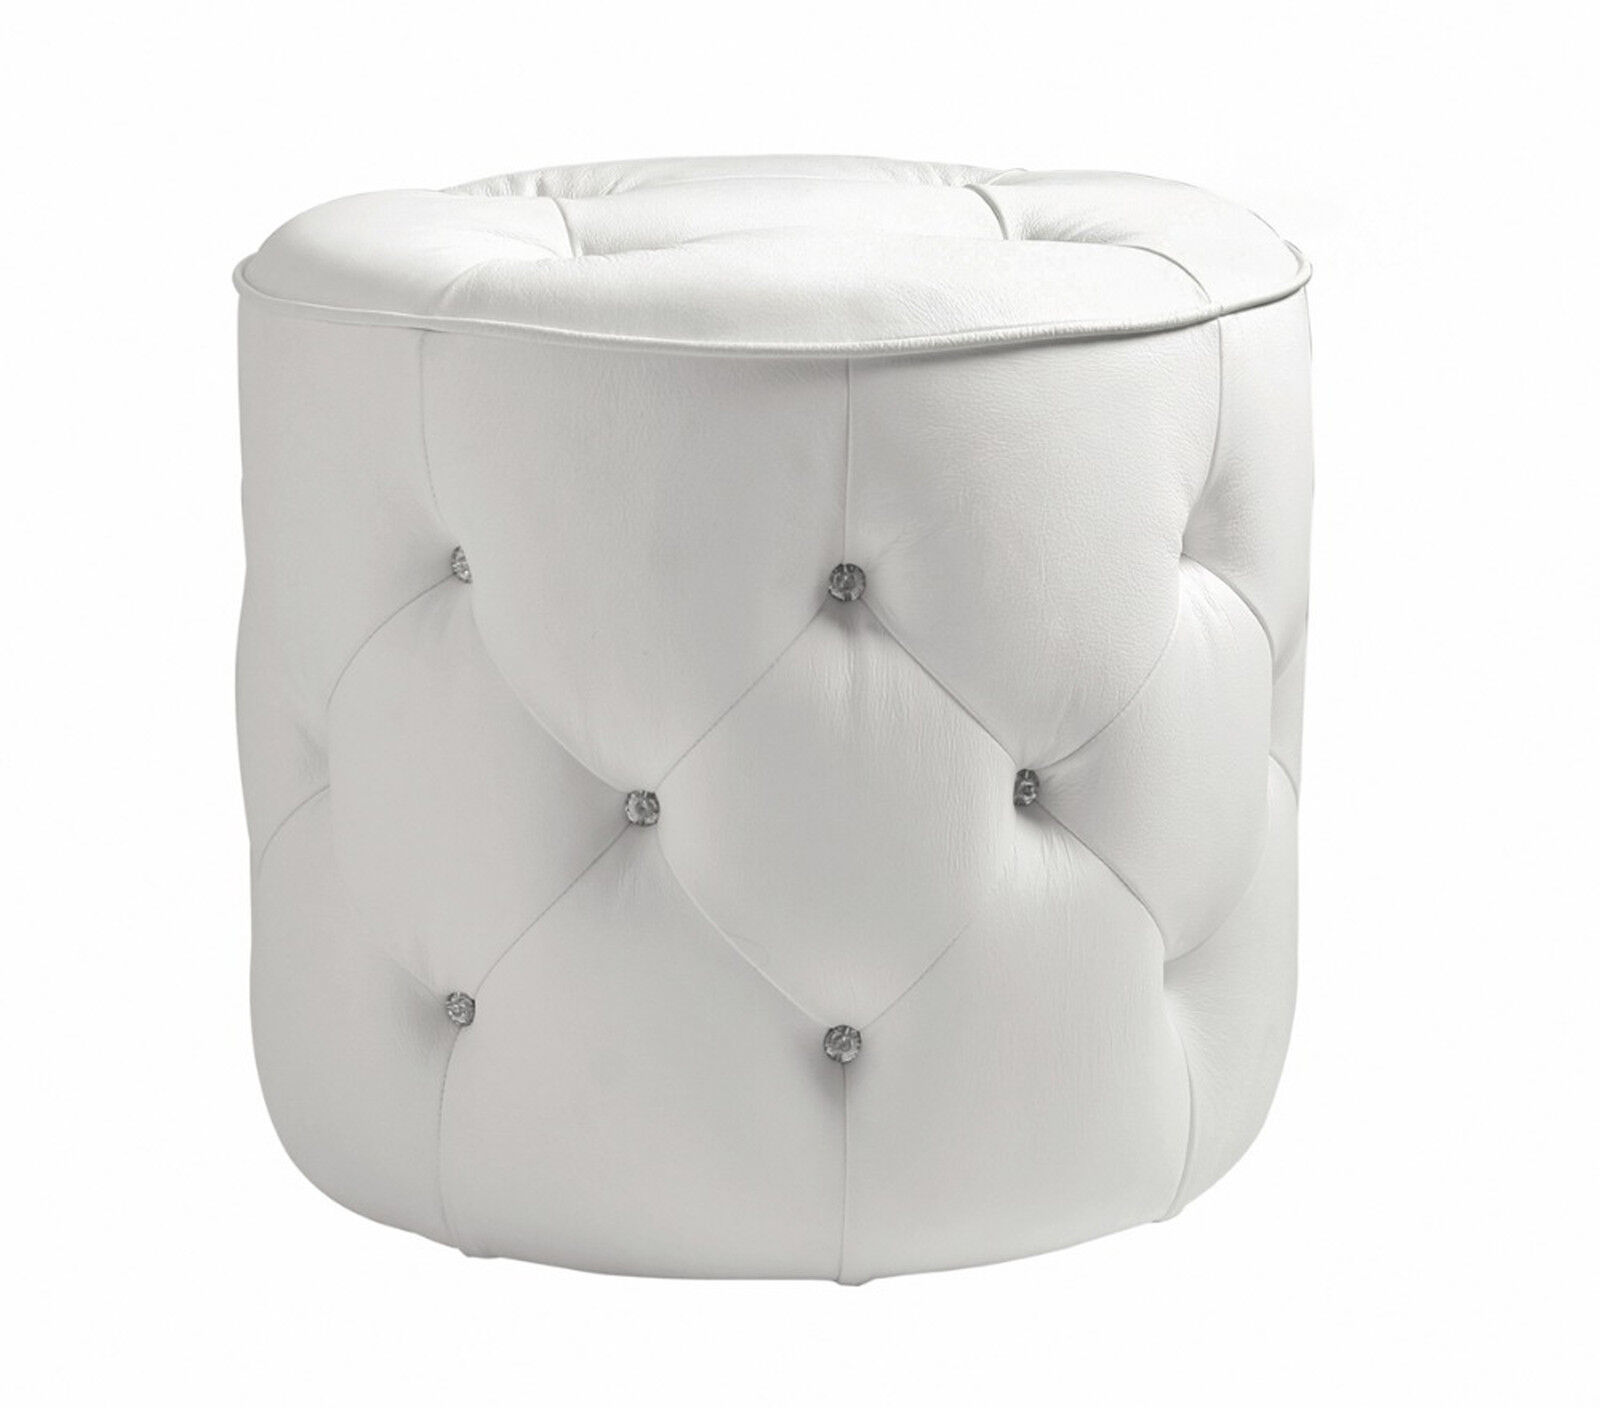 akhtar furniture wooden sofa pillows for white leather diamante crystal glass button round upholstery headboard